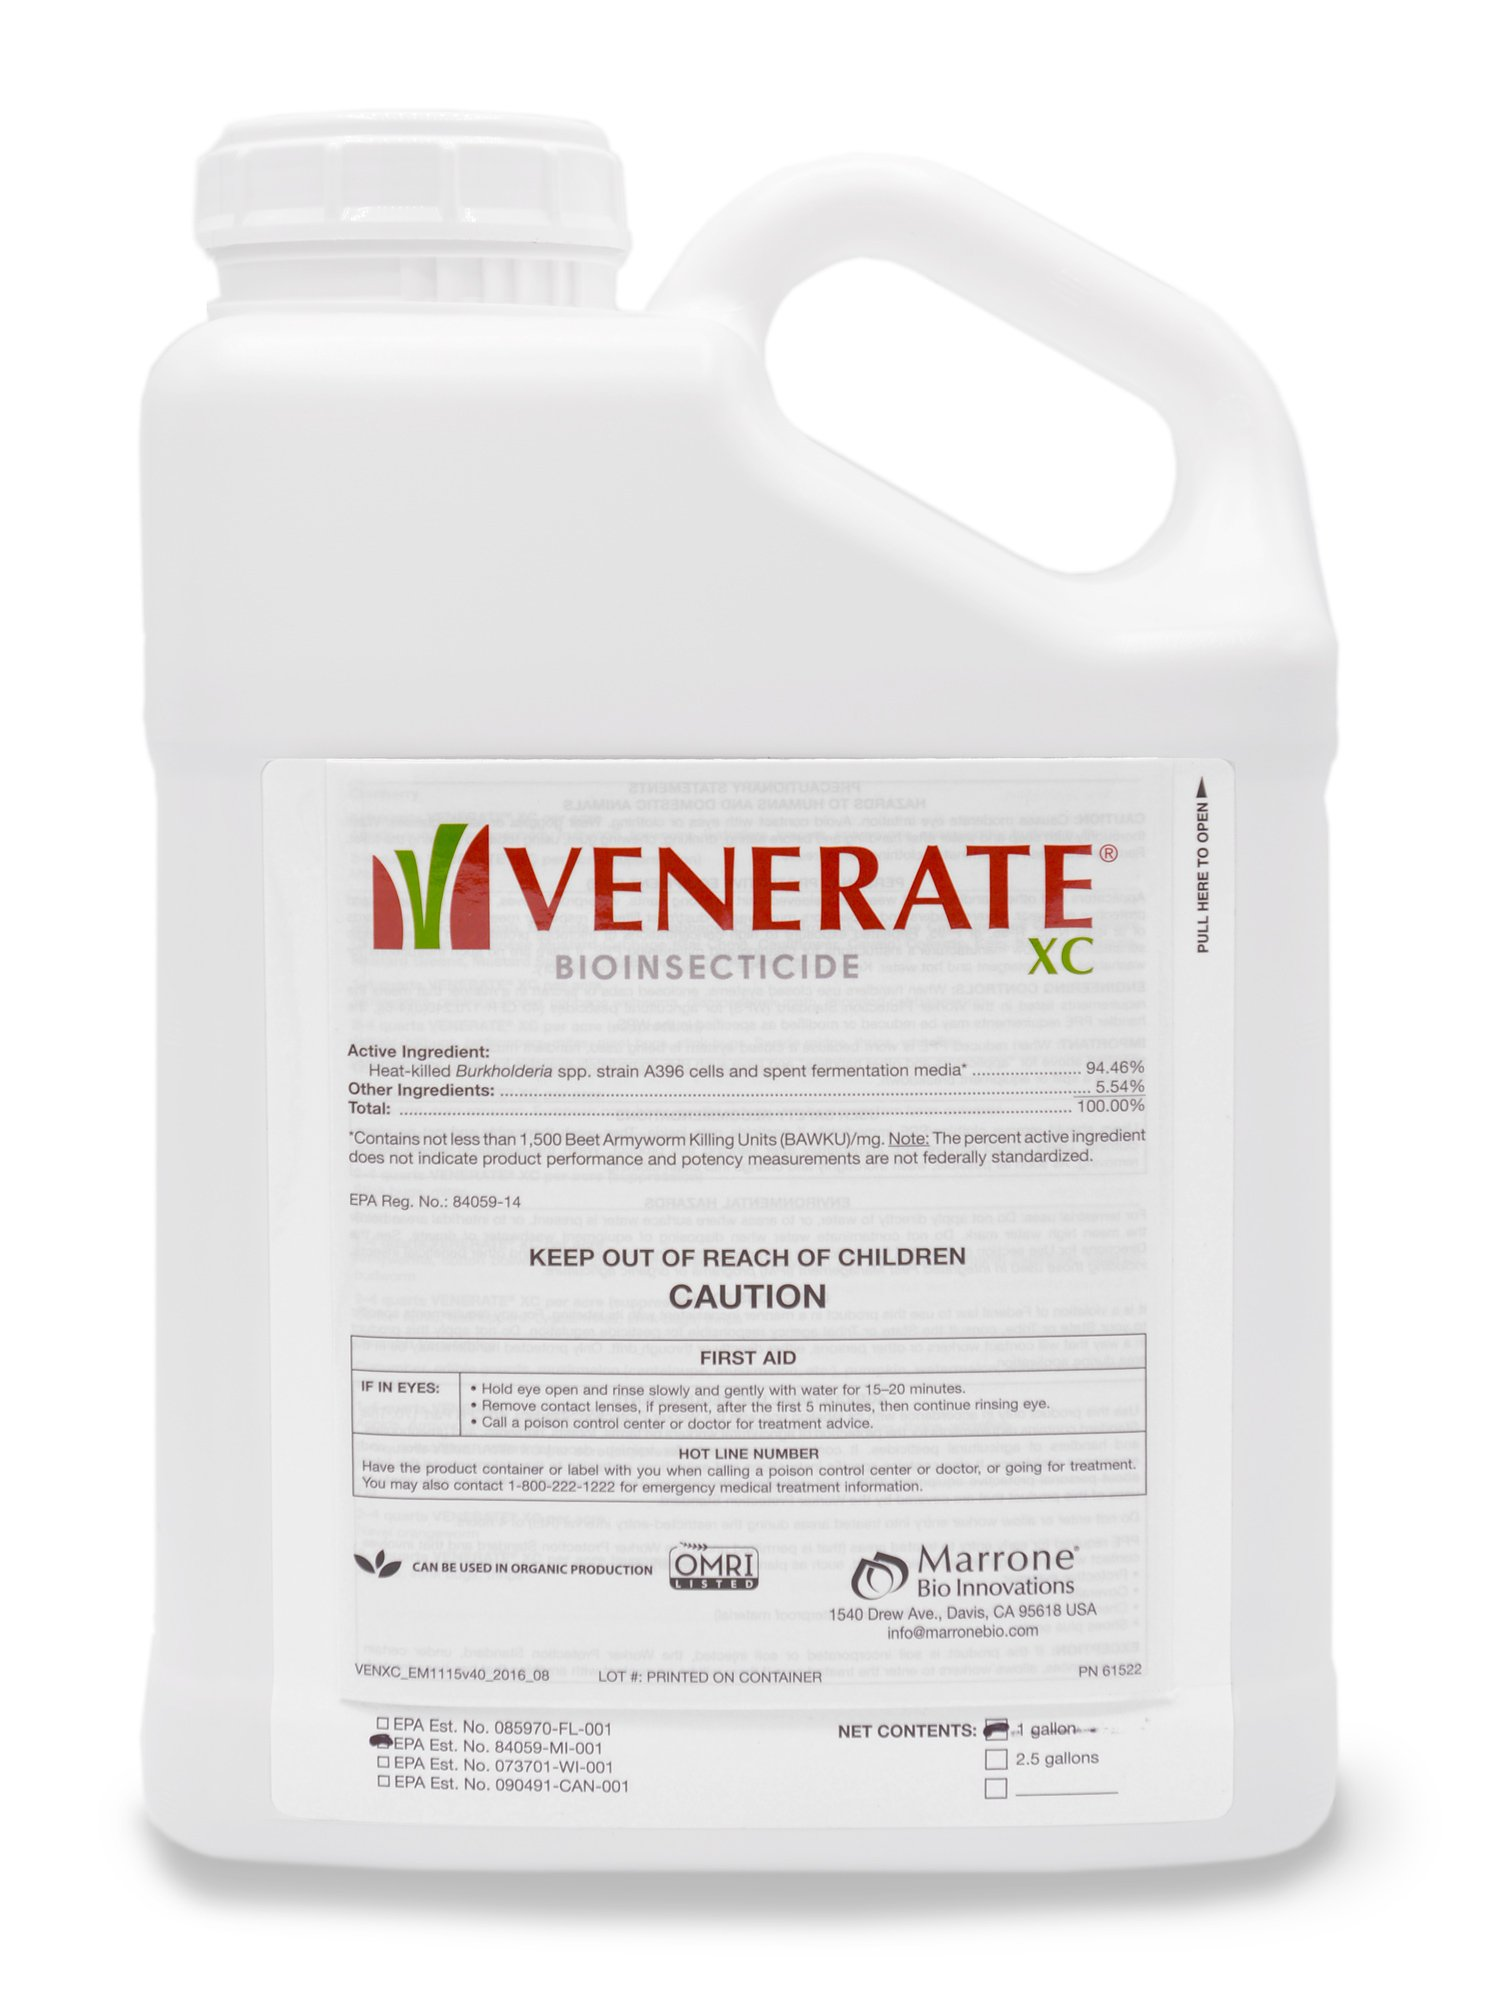 Venerate XC Bioinsecticide 1 Gallon, insecticide for mites, thrips, aphids, borers, whitefly, leafhoppers on Grapes, Strawberries, Potatoes, Citrus and more by Marrone Bio Innovations